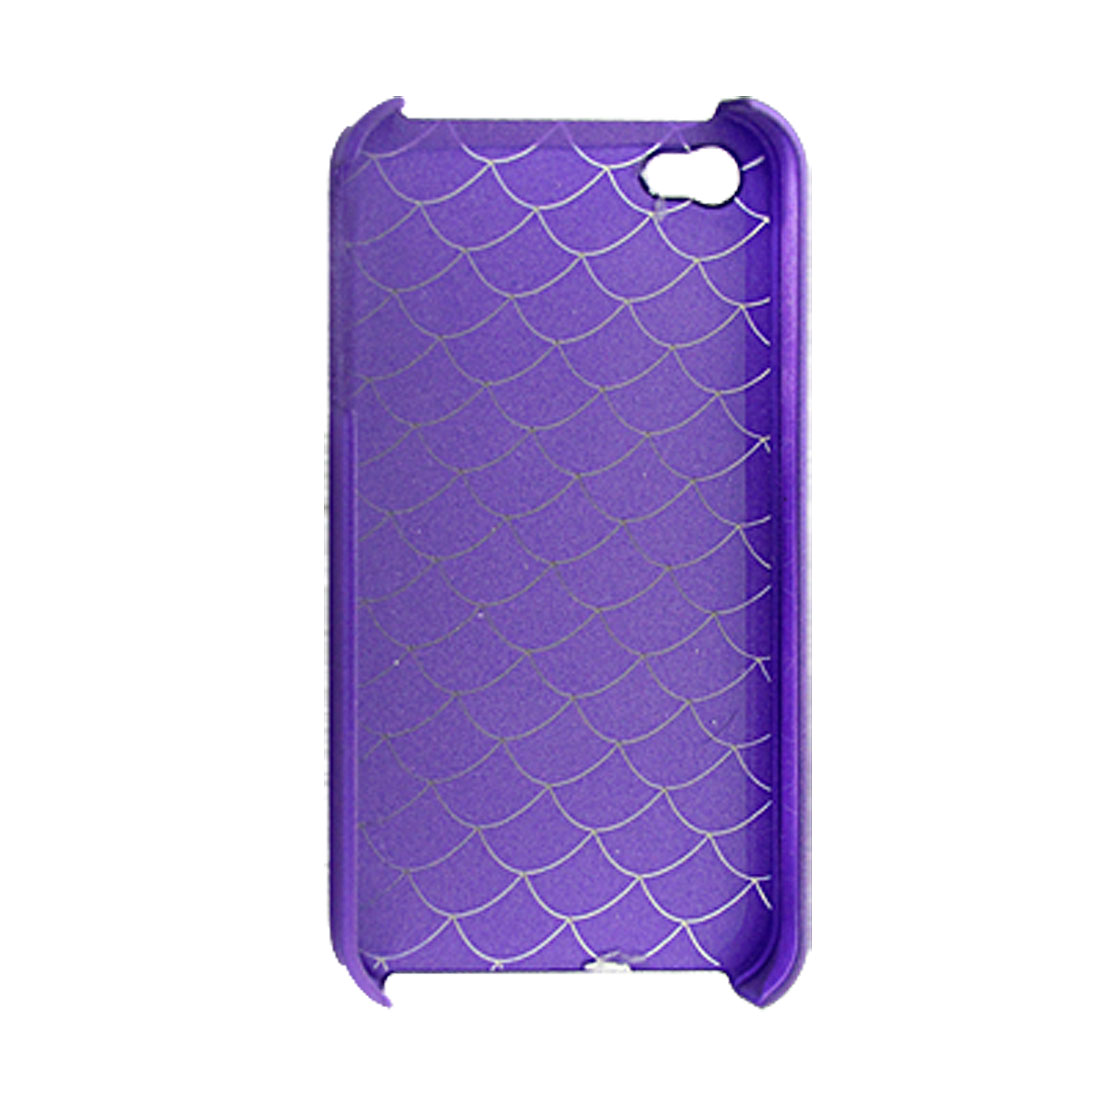 Fish Scale Non Slip Purple Cover Case w Screen Guard for iPhone 4 4G